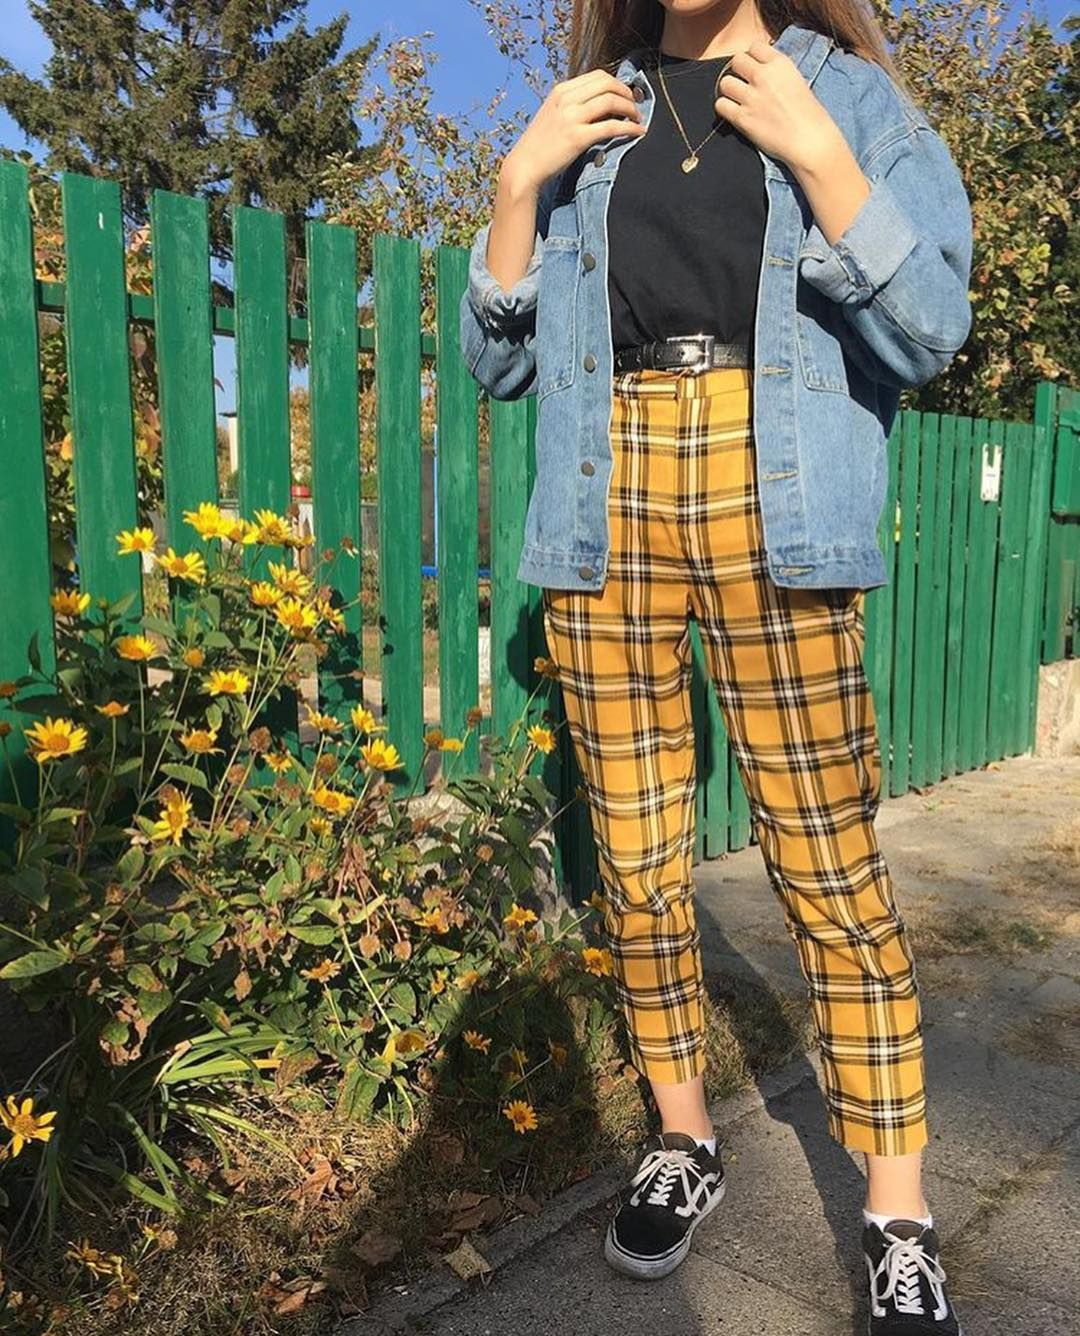 a59e3f94 Vêtements Aesthetic, Tumblr, Goth, Grunge   Clothes → in 2019 ...